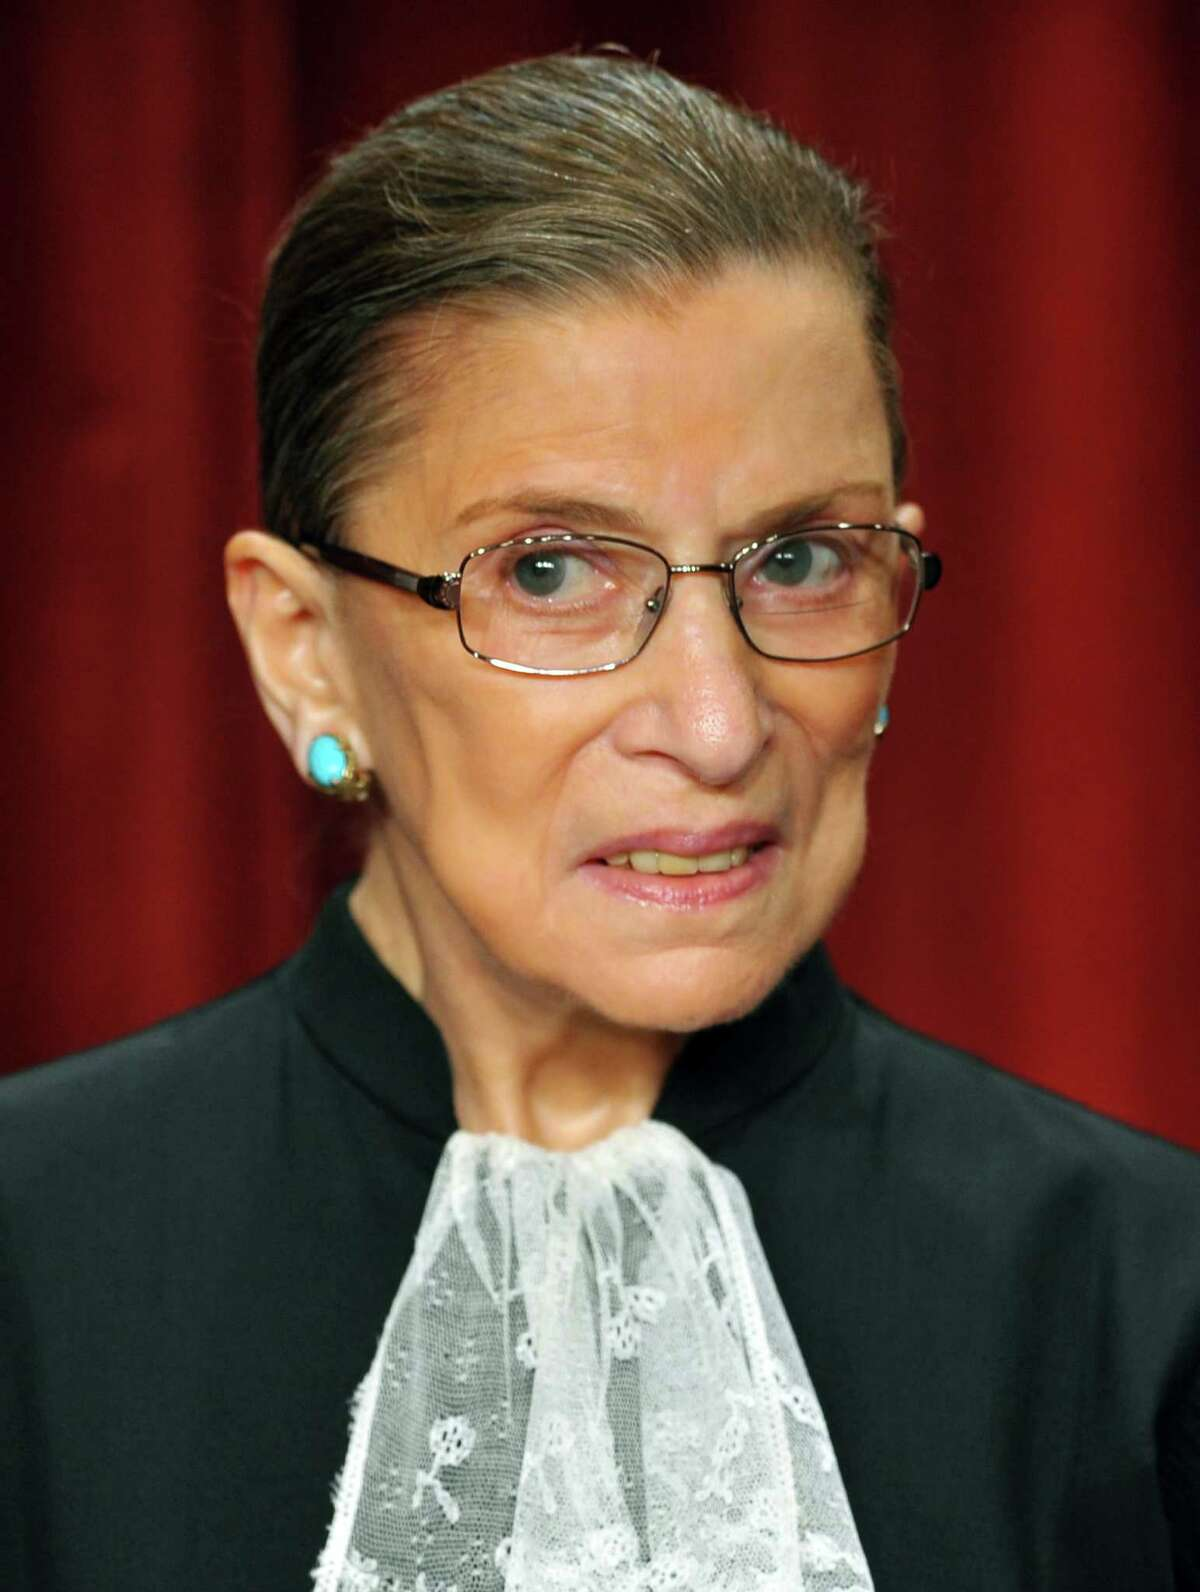 US Supreme Court Justice Ruth Bader Ginsburg: